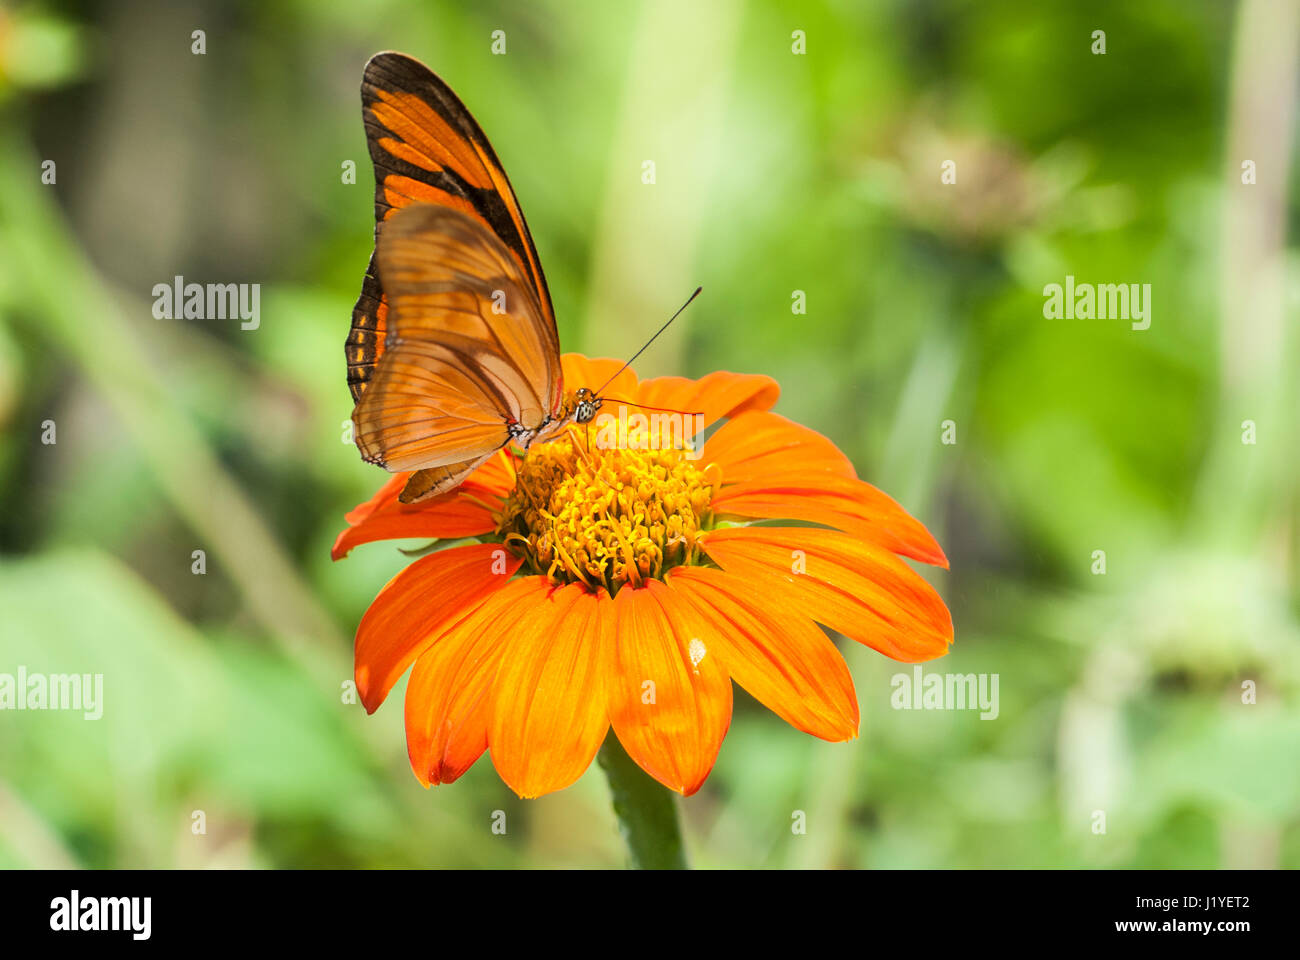 Profile view of a Julia butterfly (Dryas iulia) feeding on nectar from an orange coloured flower - Stock Image